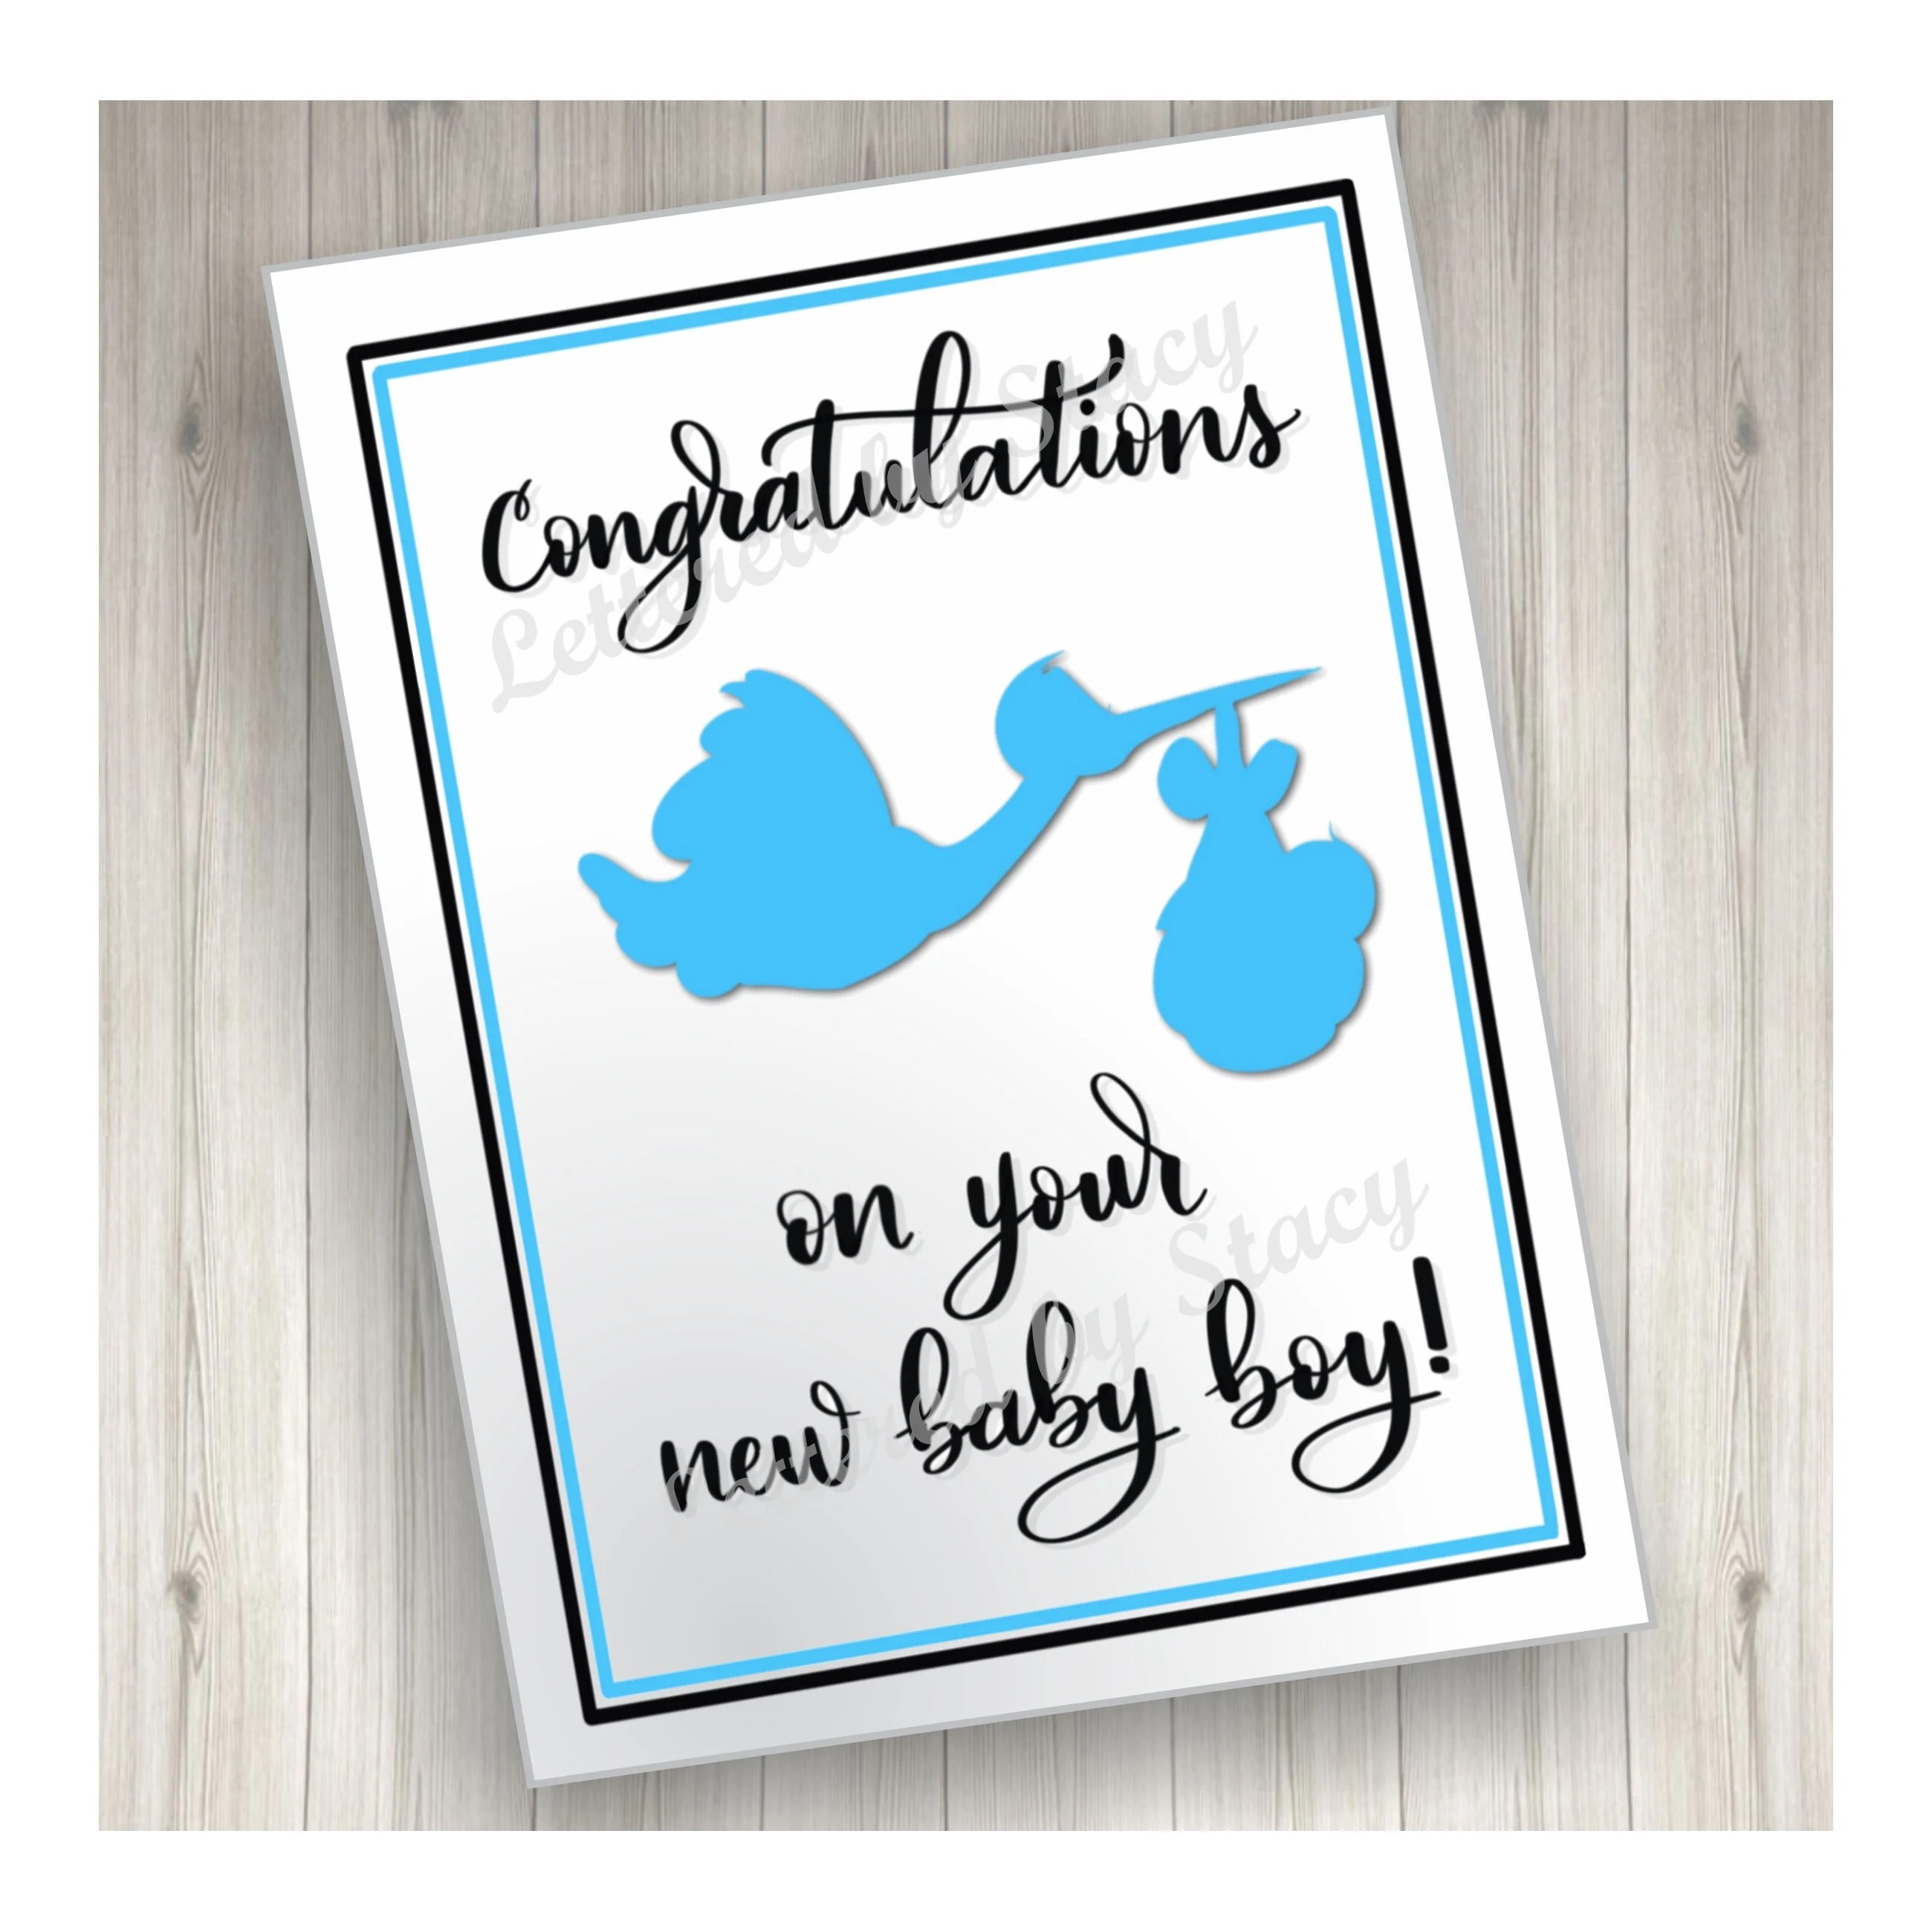 New baby card Congratulations on your new baby boy with blue Etsy